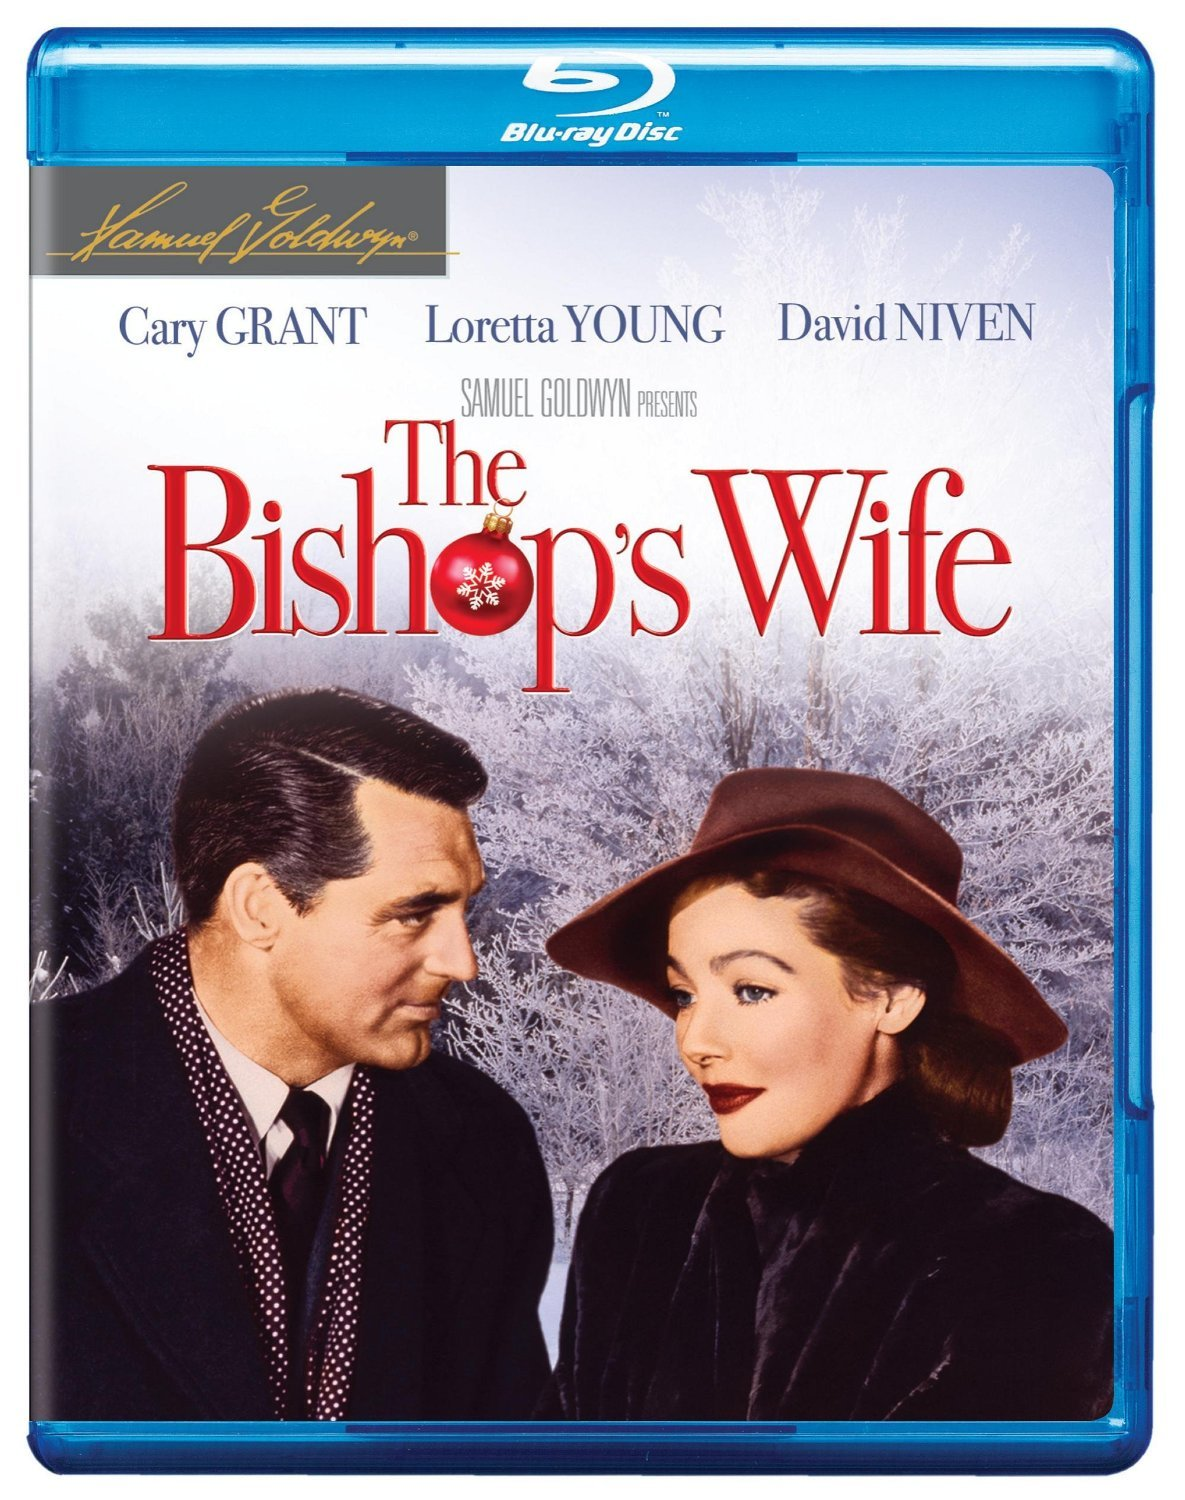 the-bishops-wife-blu-ray-91emaeshf1l-sl1500-jpg-dbeaa1b69e988549